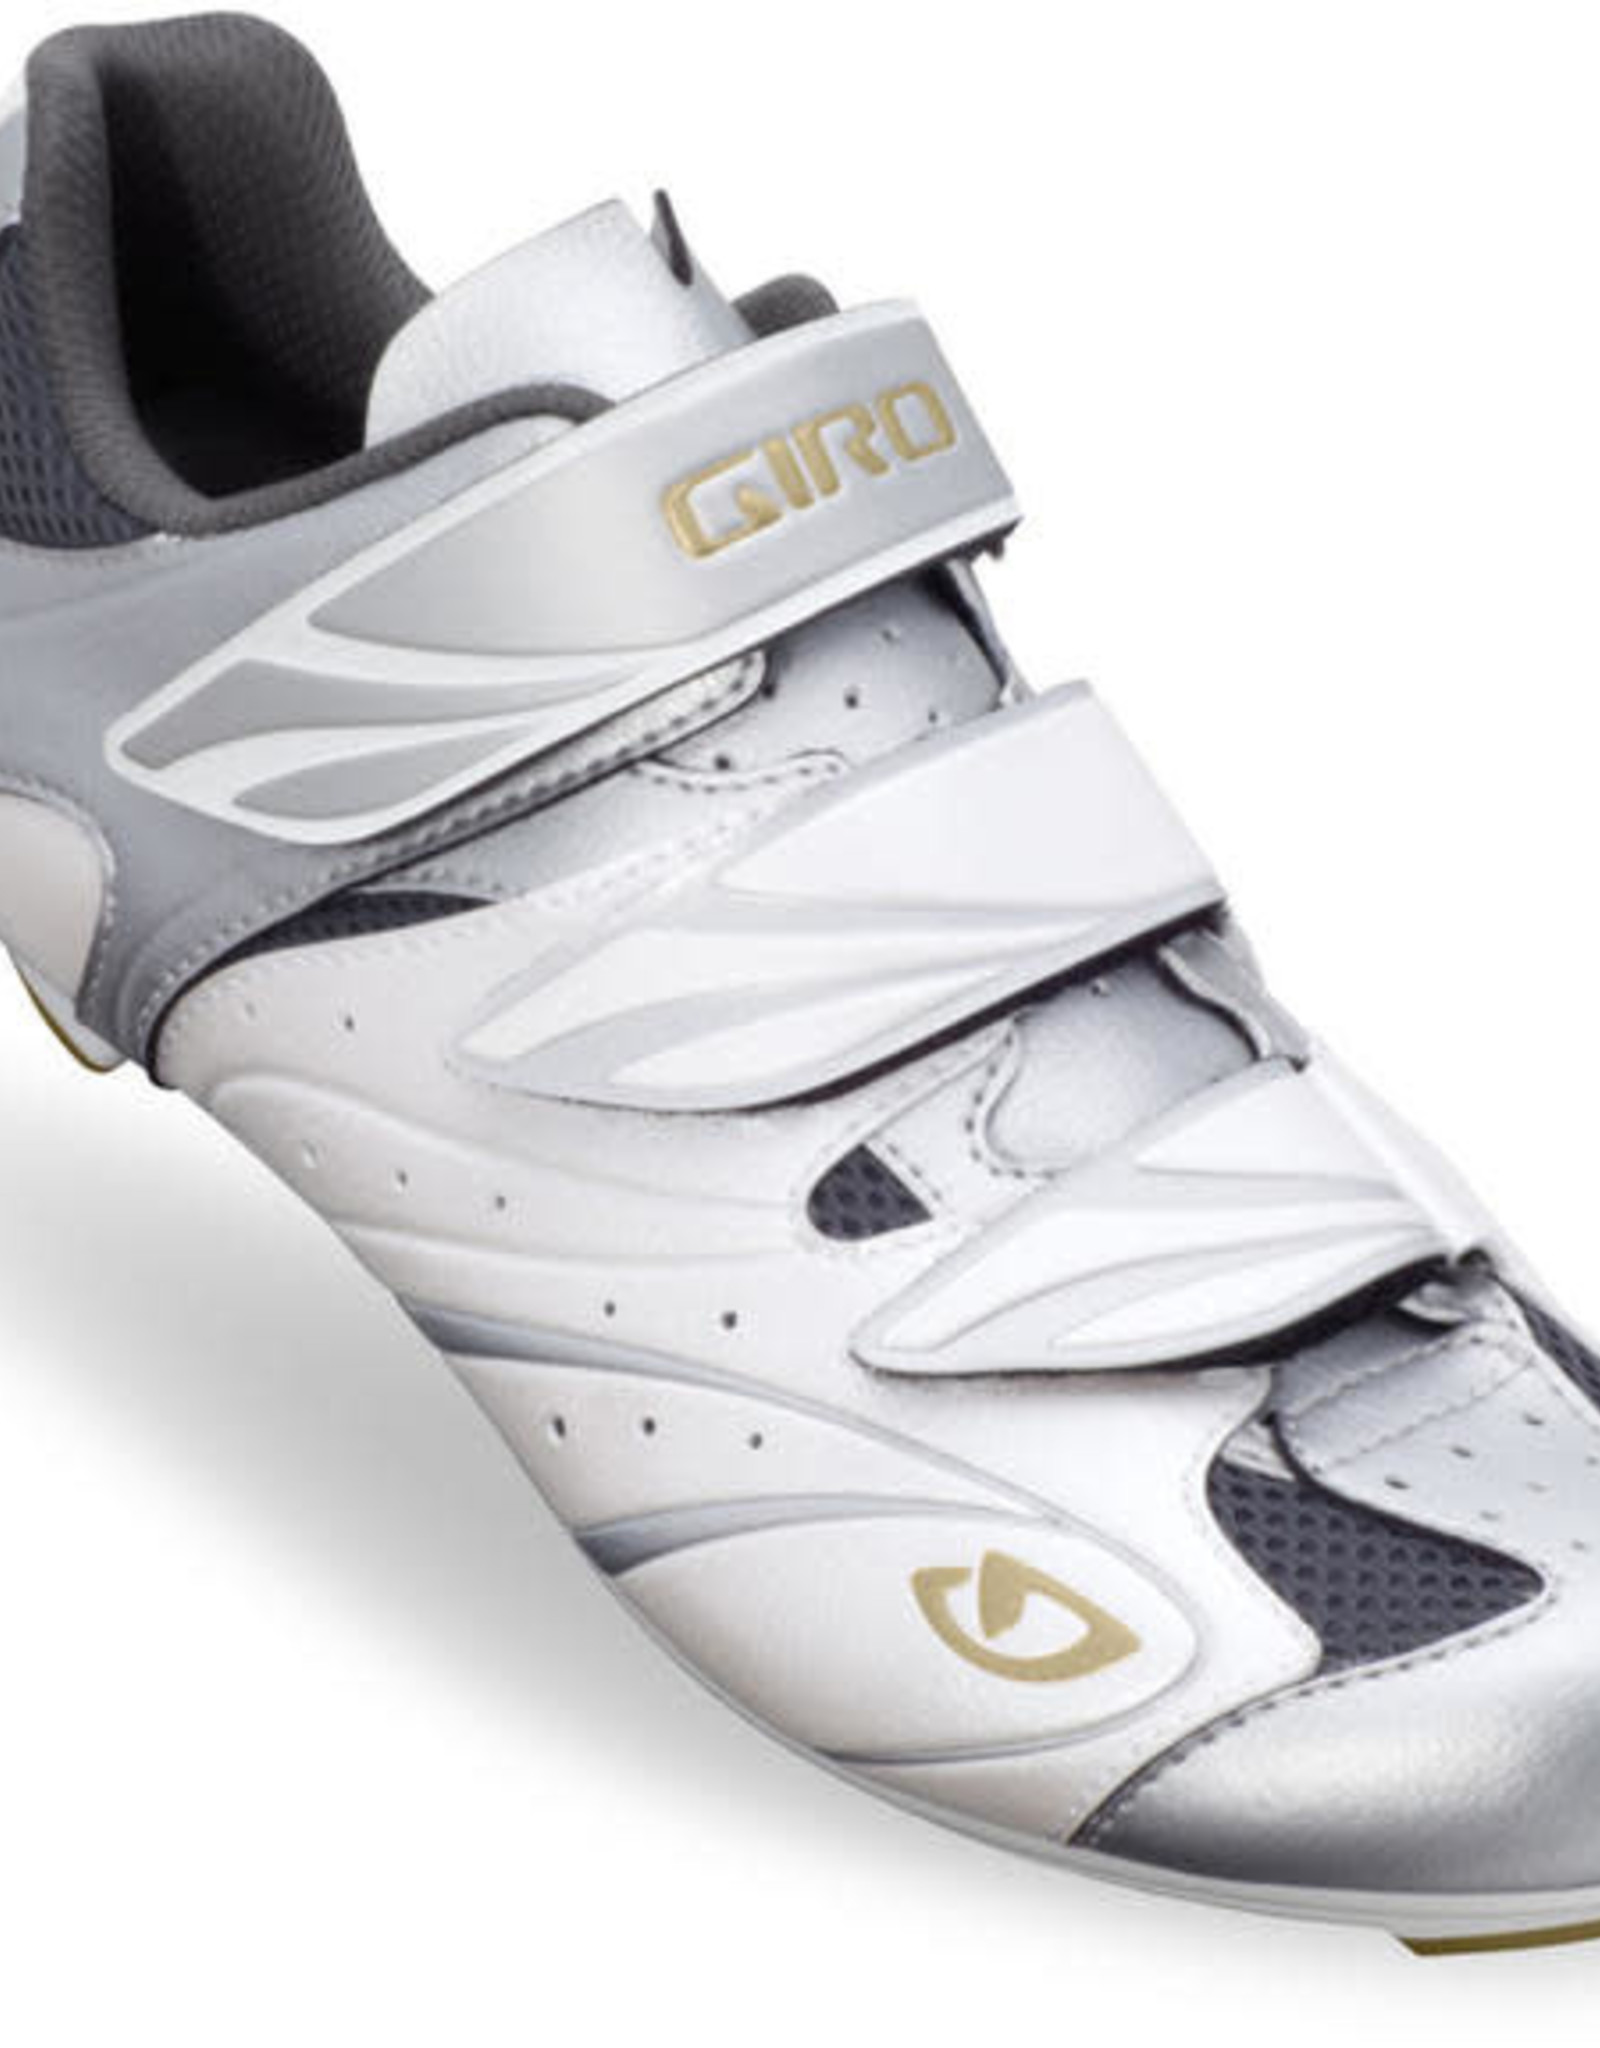 Giro GIRO Bike Shoes SANTE